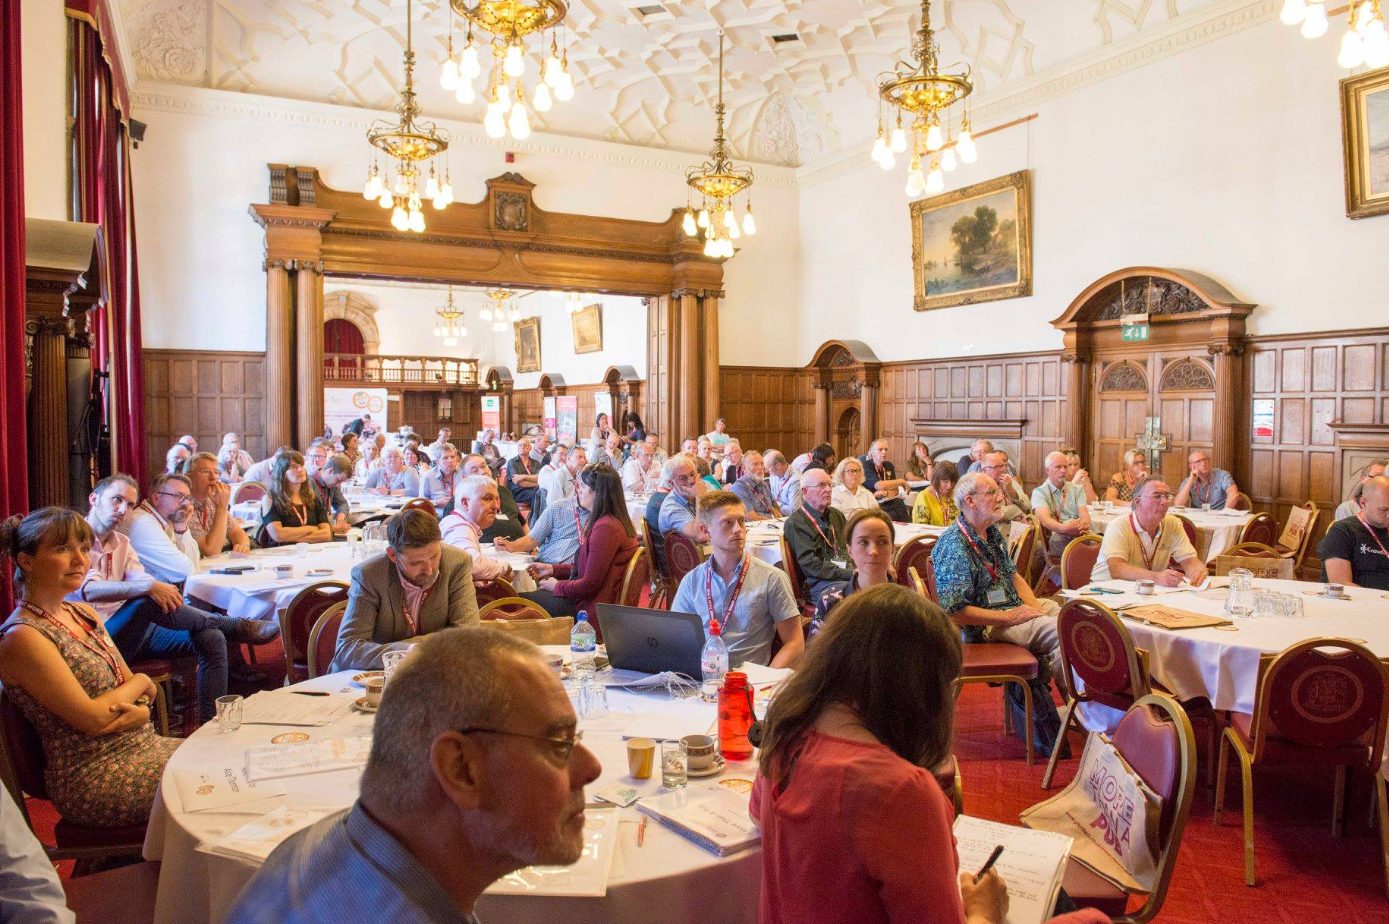 Why does Power to Change support community pubs?